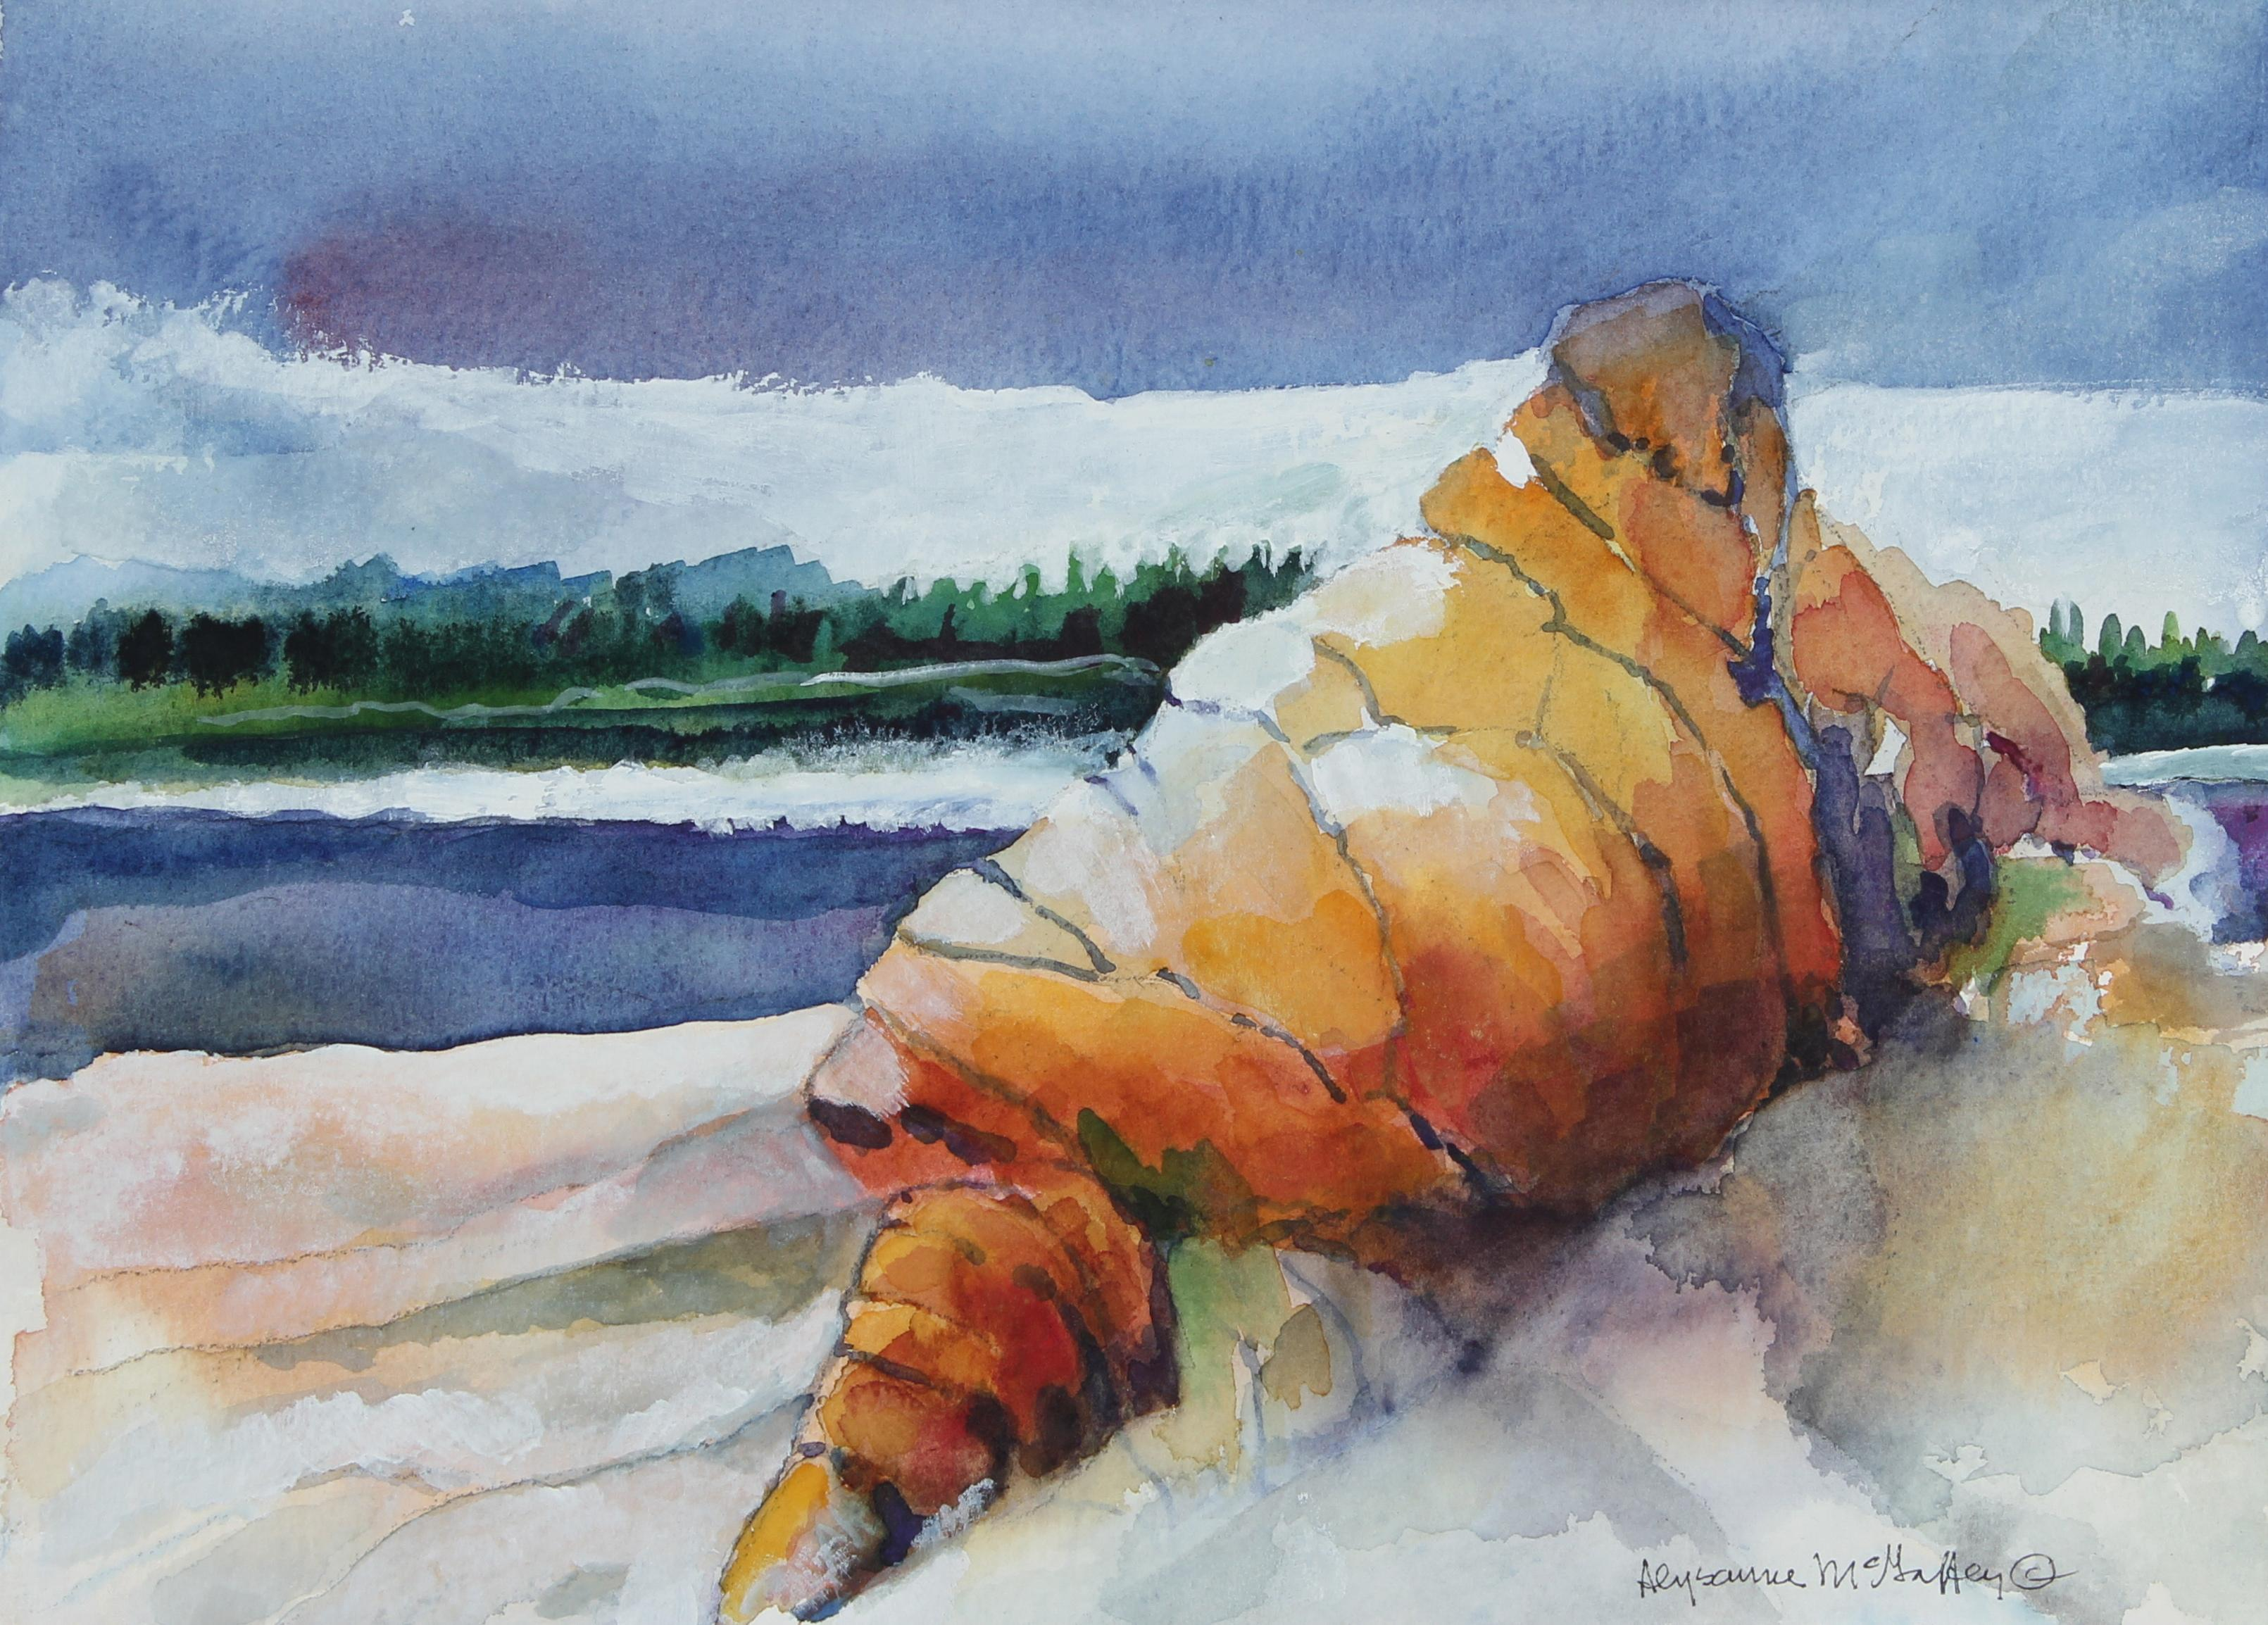 Colorful 20th Century Northern California Seascape in Watercolor on Paper